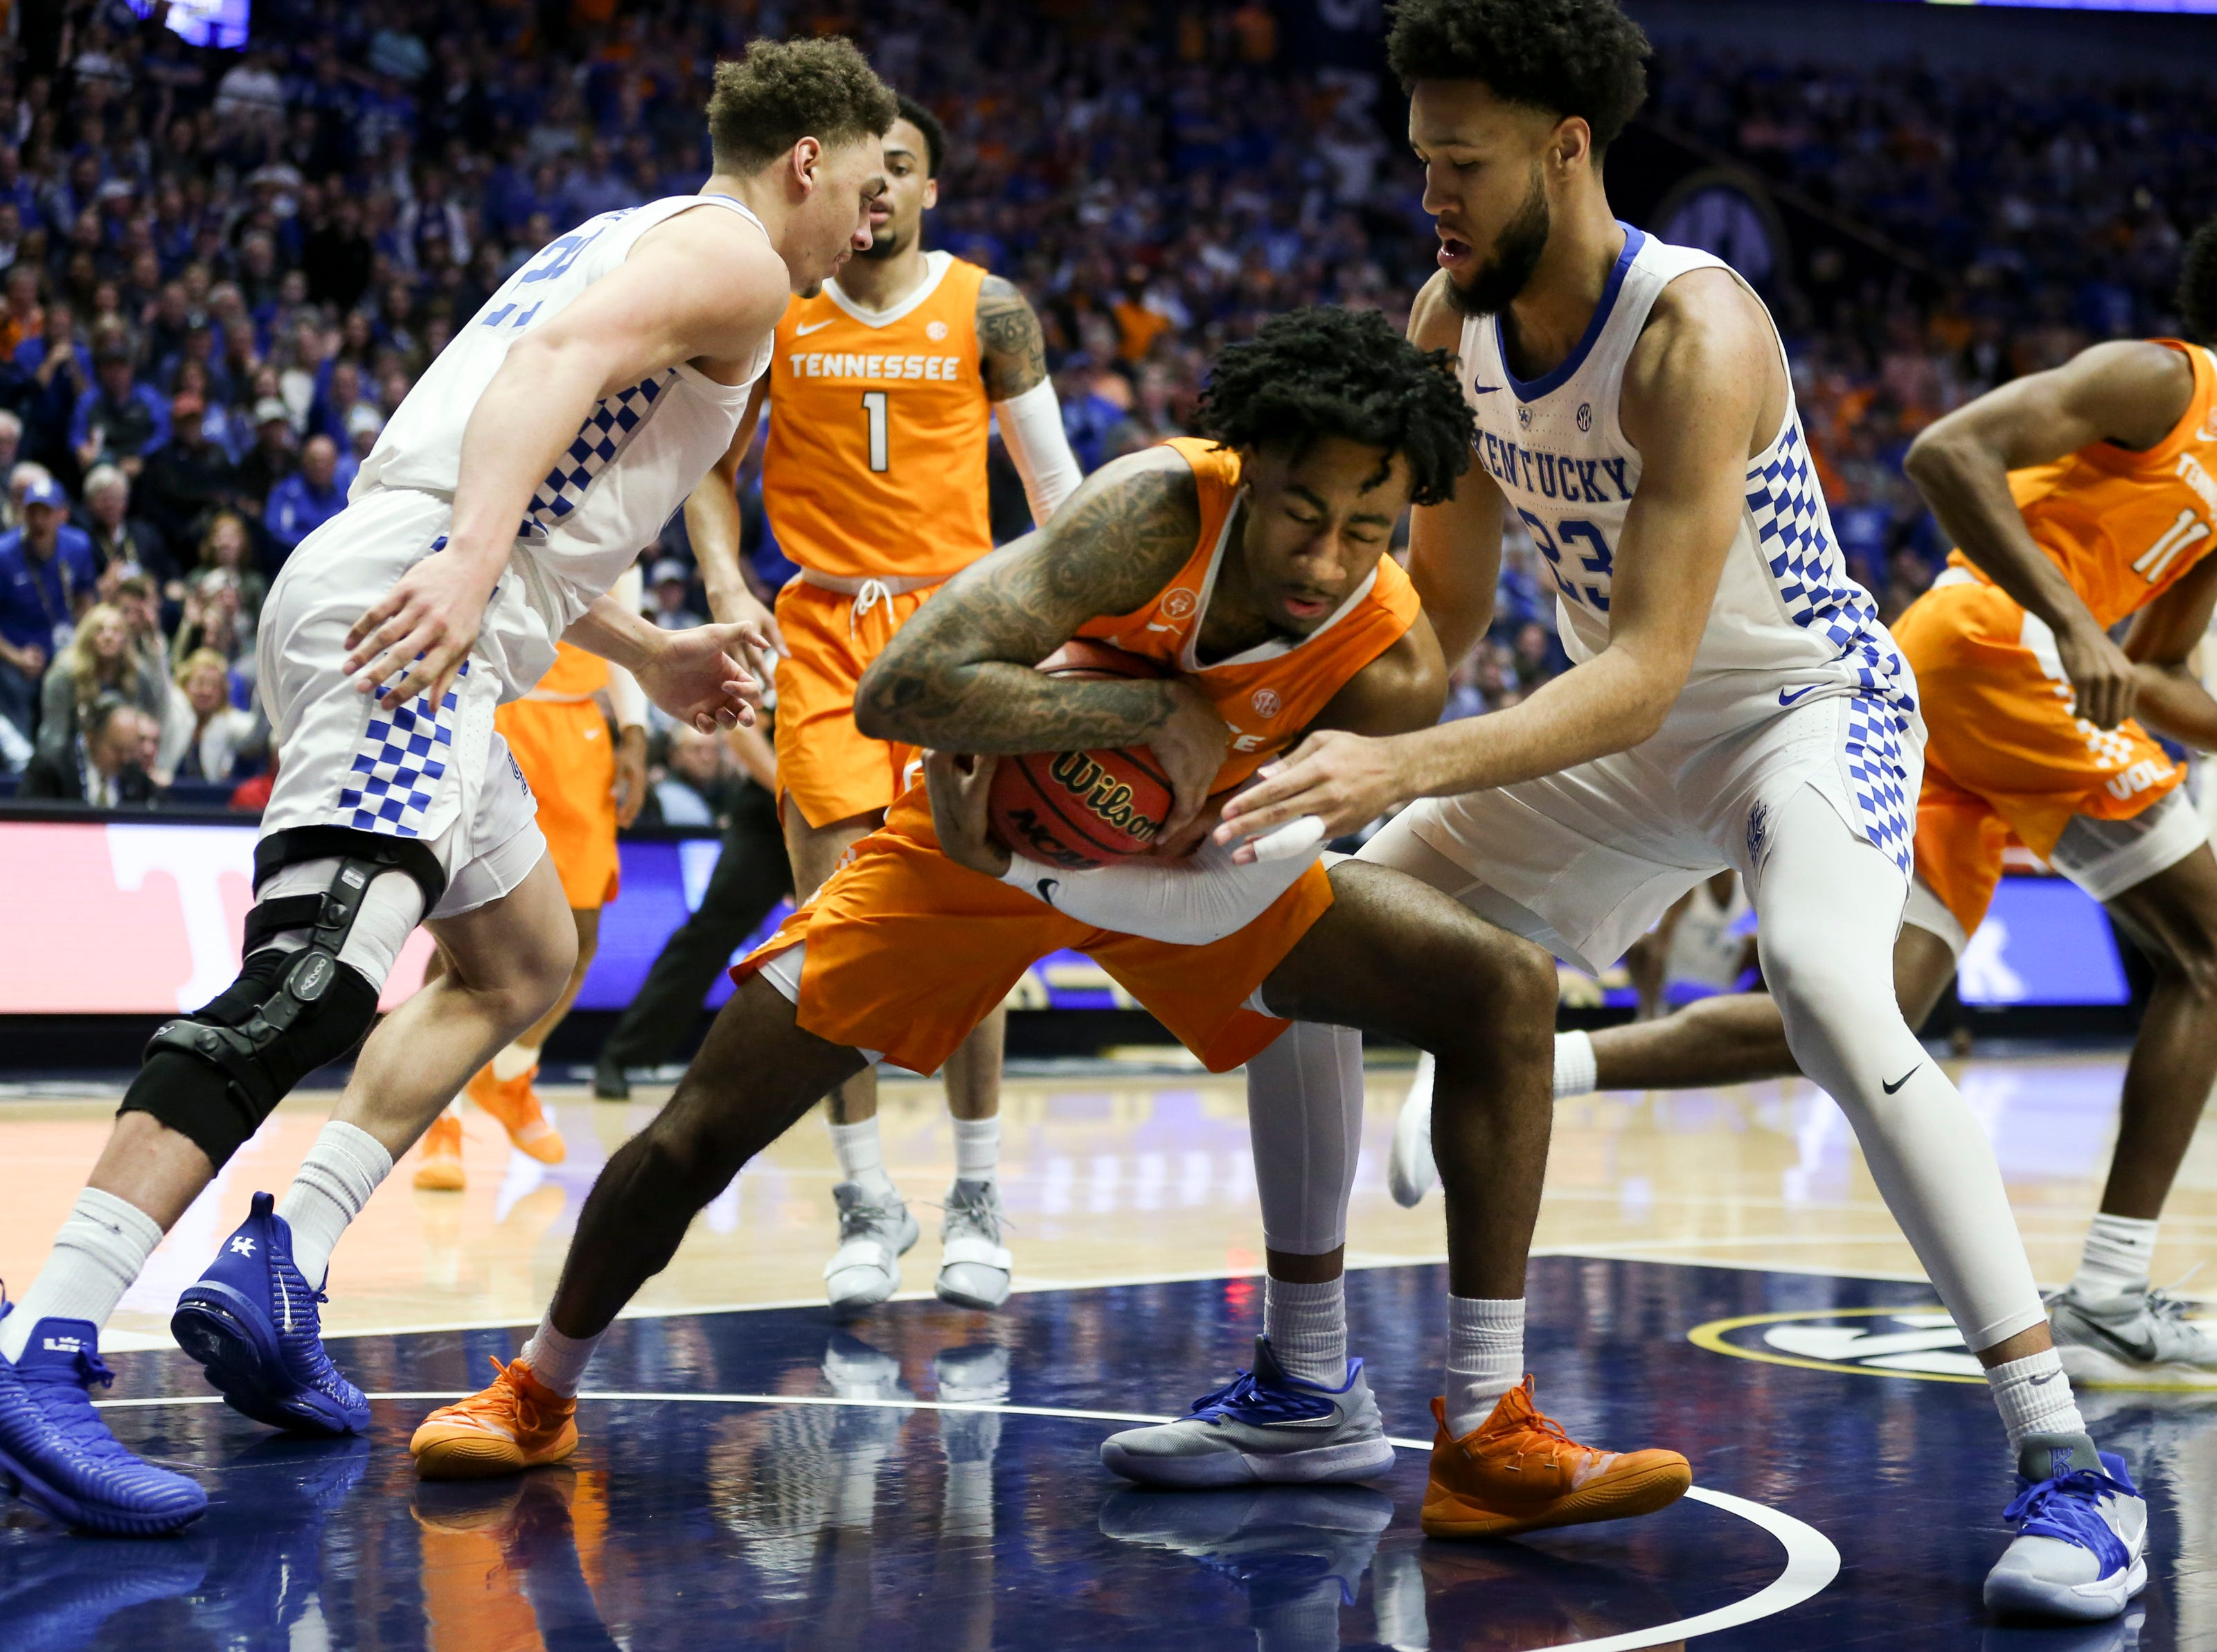 Tennessee guard Jordan Bowden (23)  battles Kentucky forward EJ Montgomery (23) during the first half of the SEC Men's Basketball Tournament semifinal game at Bridgestone Arena in Nashville, Tenn., Saturday, March 16, 2019.